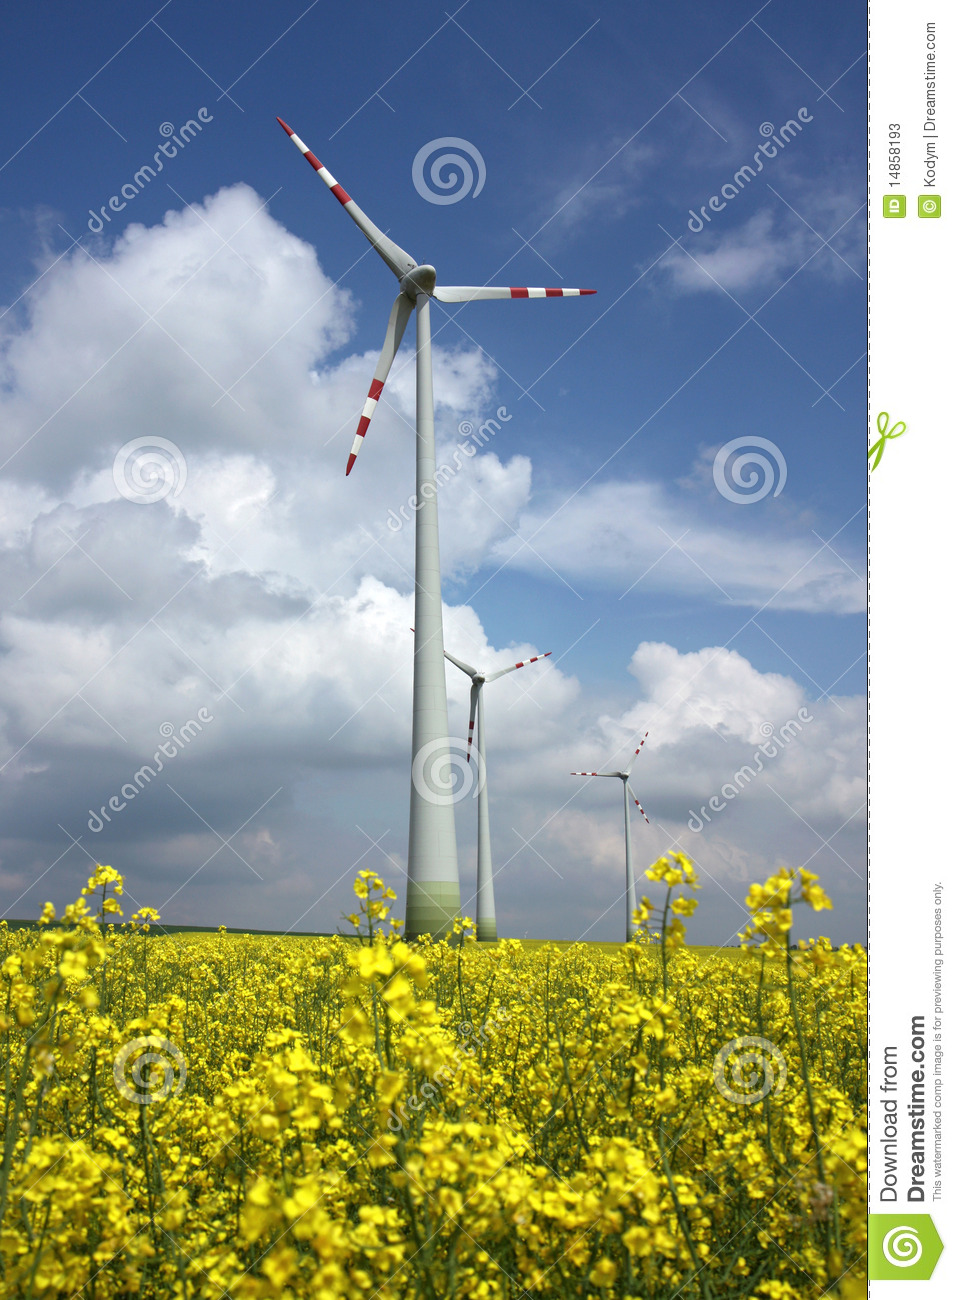 Agriculture field and wind mill power turbine